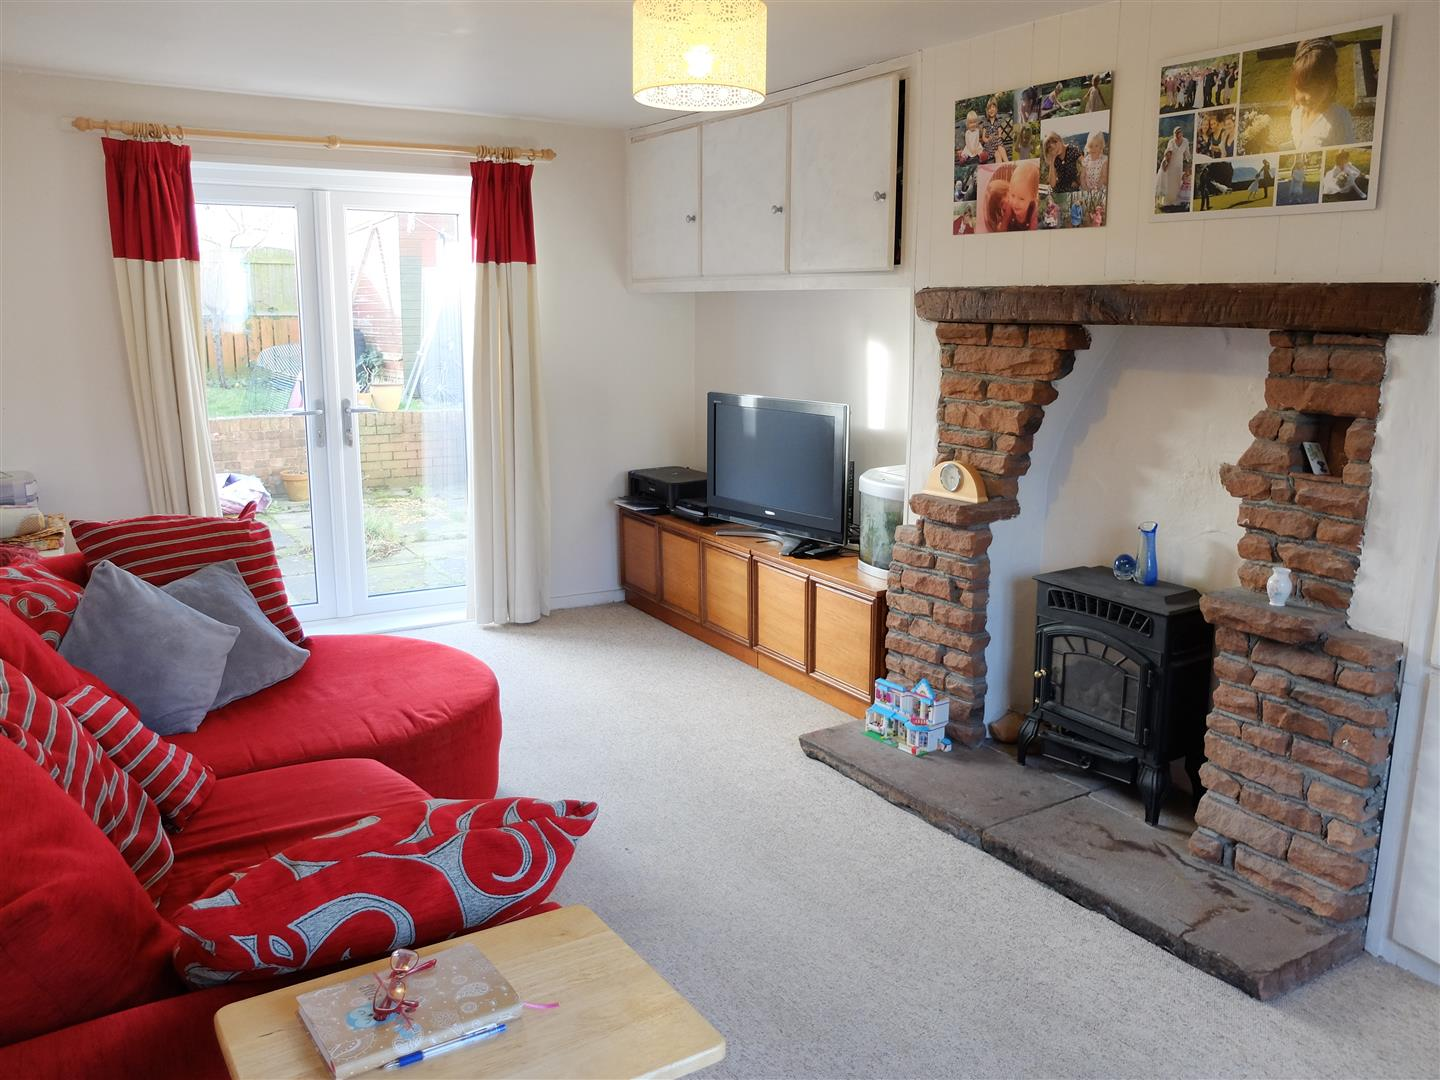 3 Bedrooms House - Terraced For Sale 15 Rye Close Carlisle